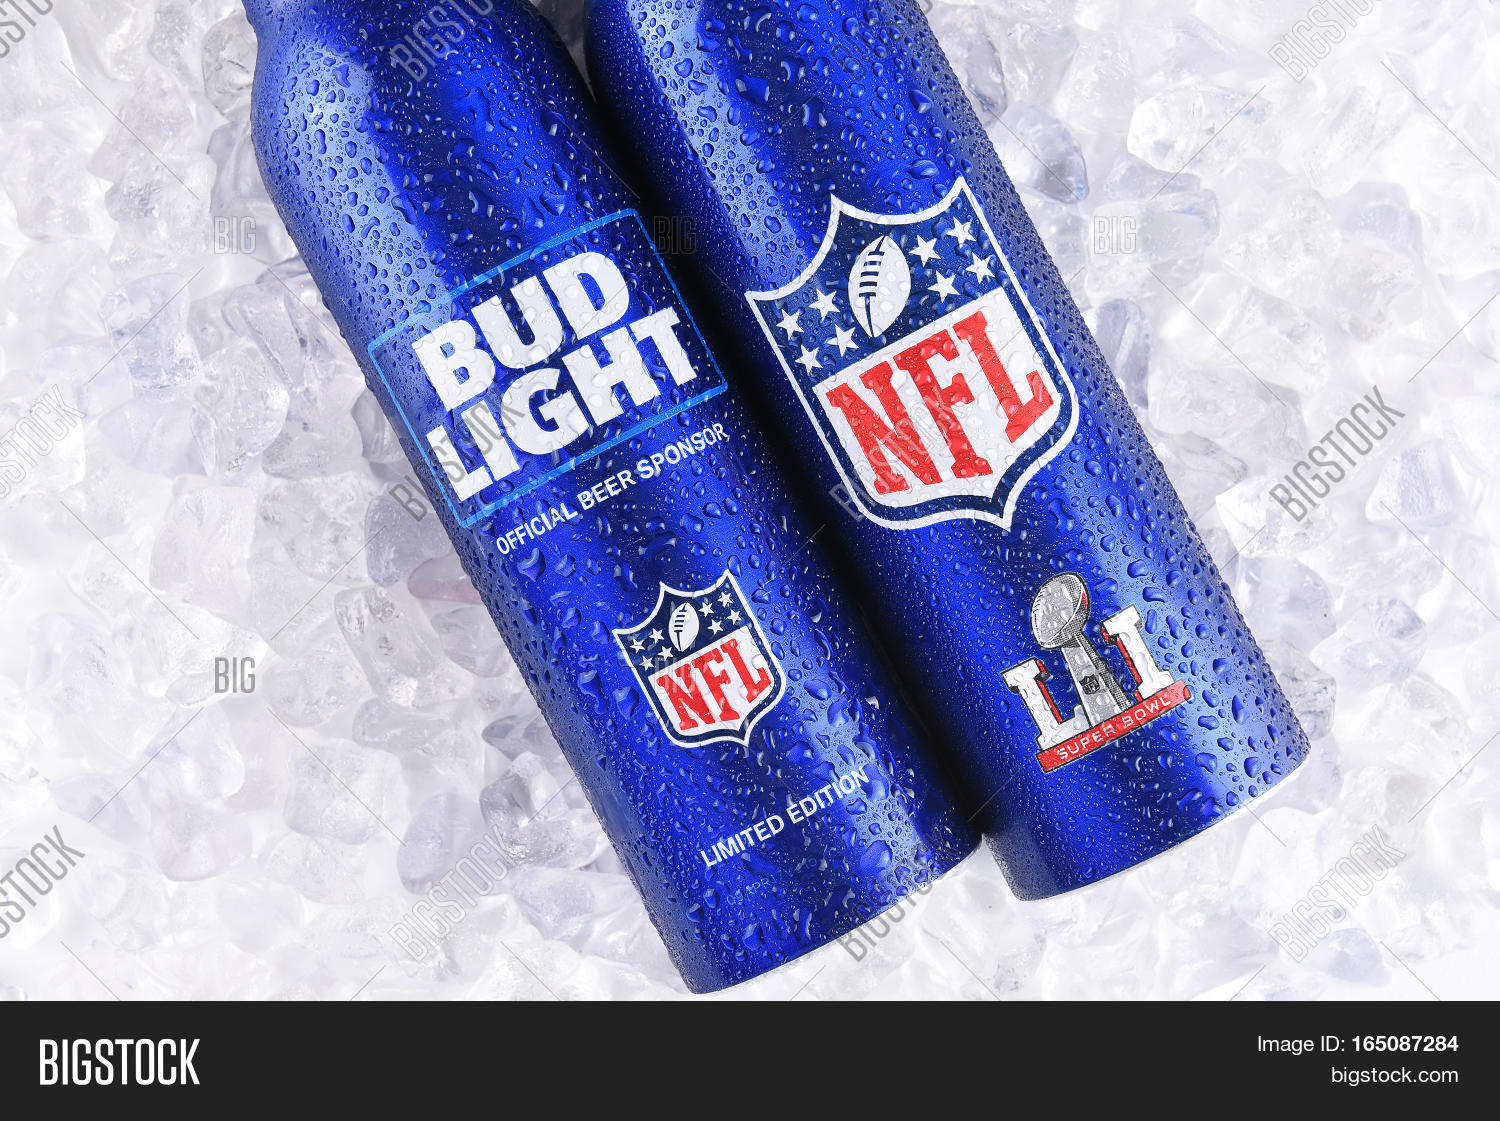 IRVINE CALIFORNIA   JANUARY 13 2017: Bud Light Aluminum Bottles In Ice. The  Resealable